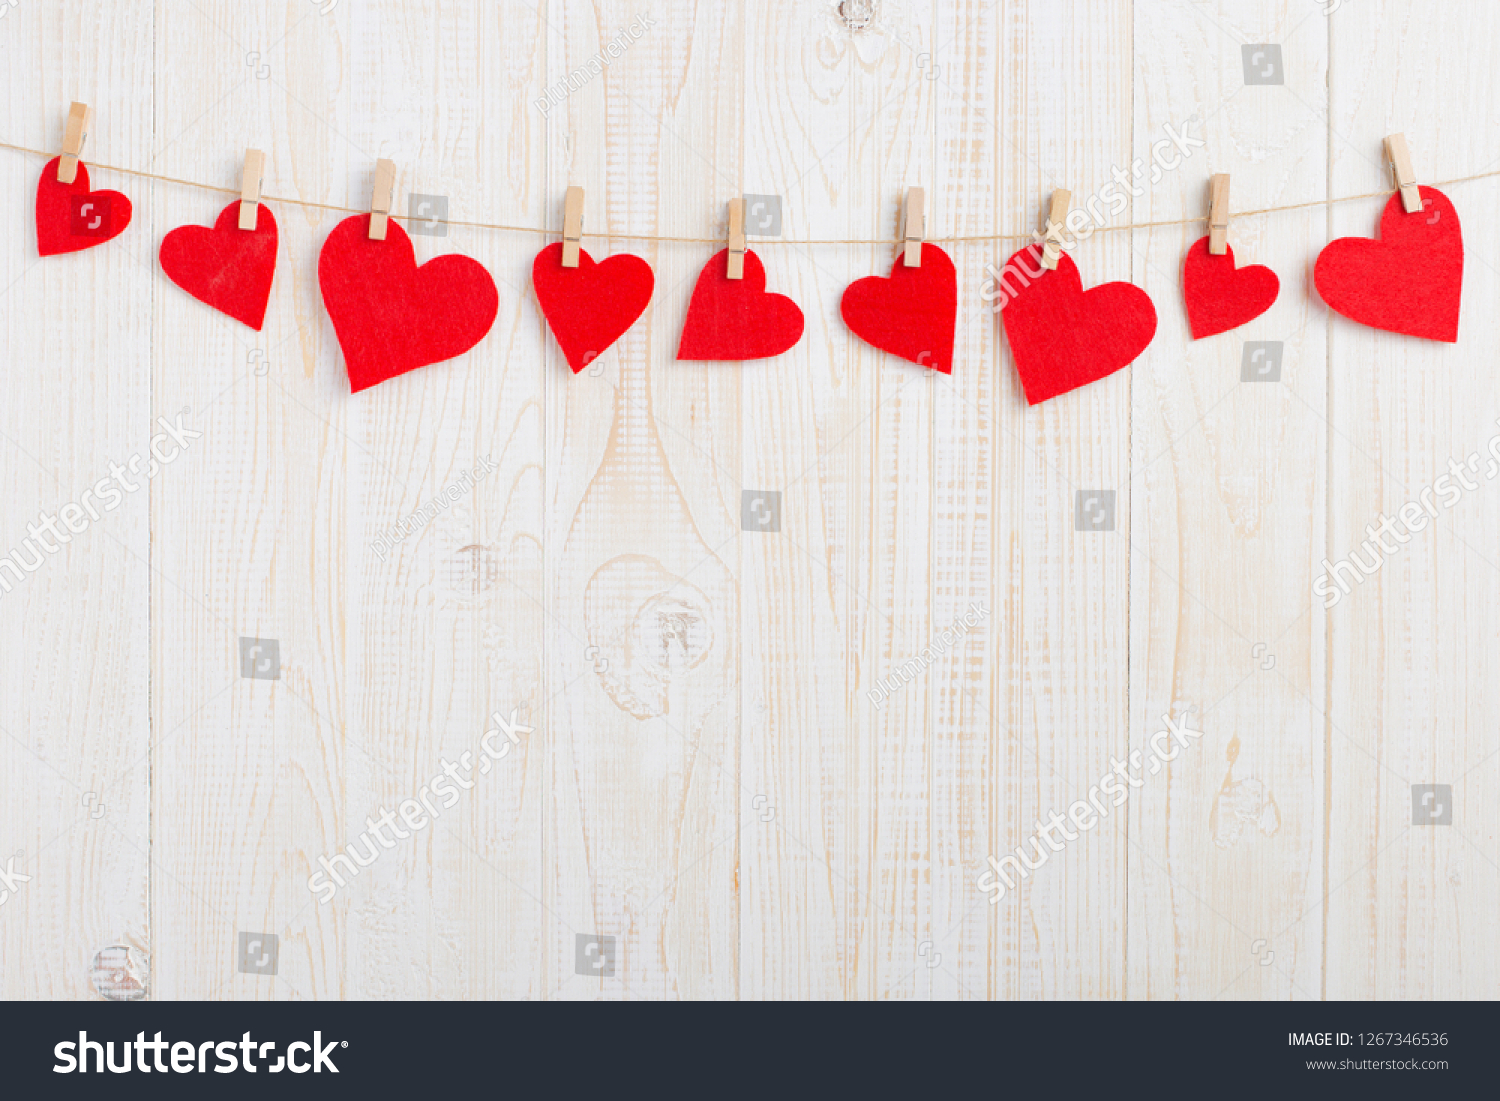 Red hearts on rope with clothespins, on a white wooden background. Place for text, copy space. #1267346536